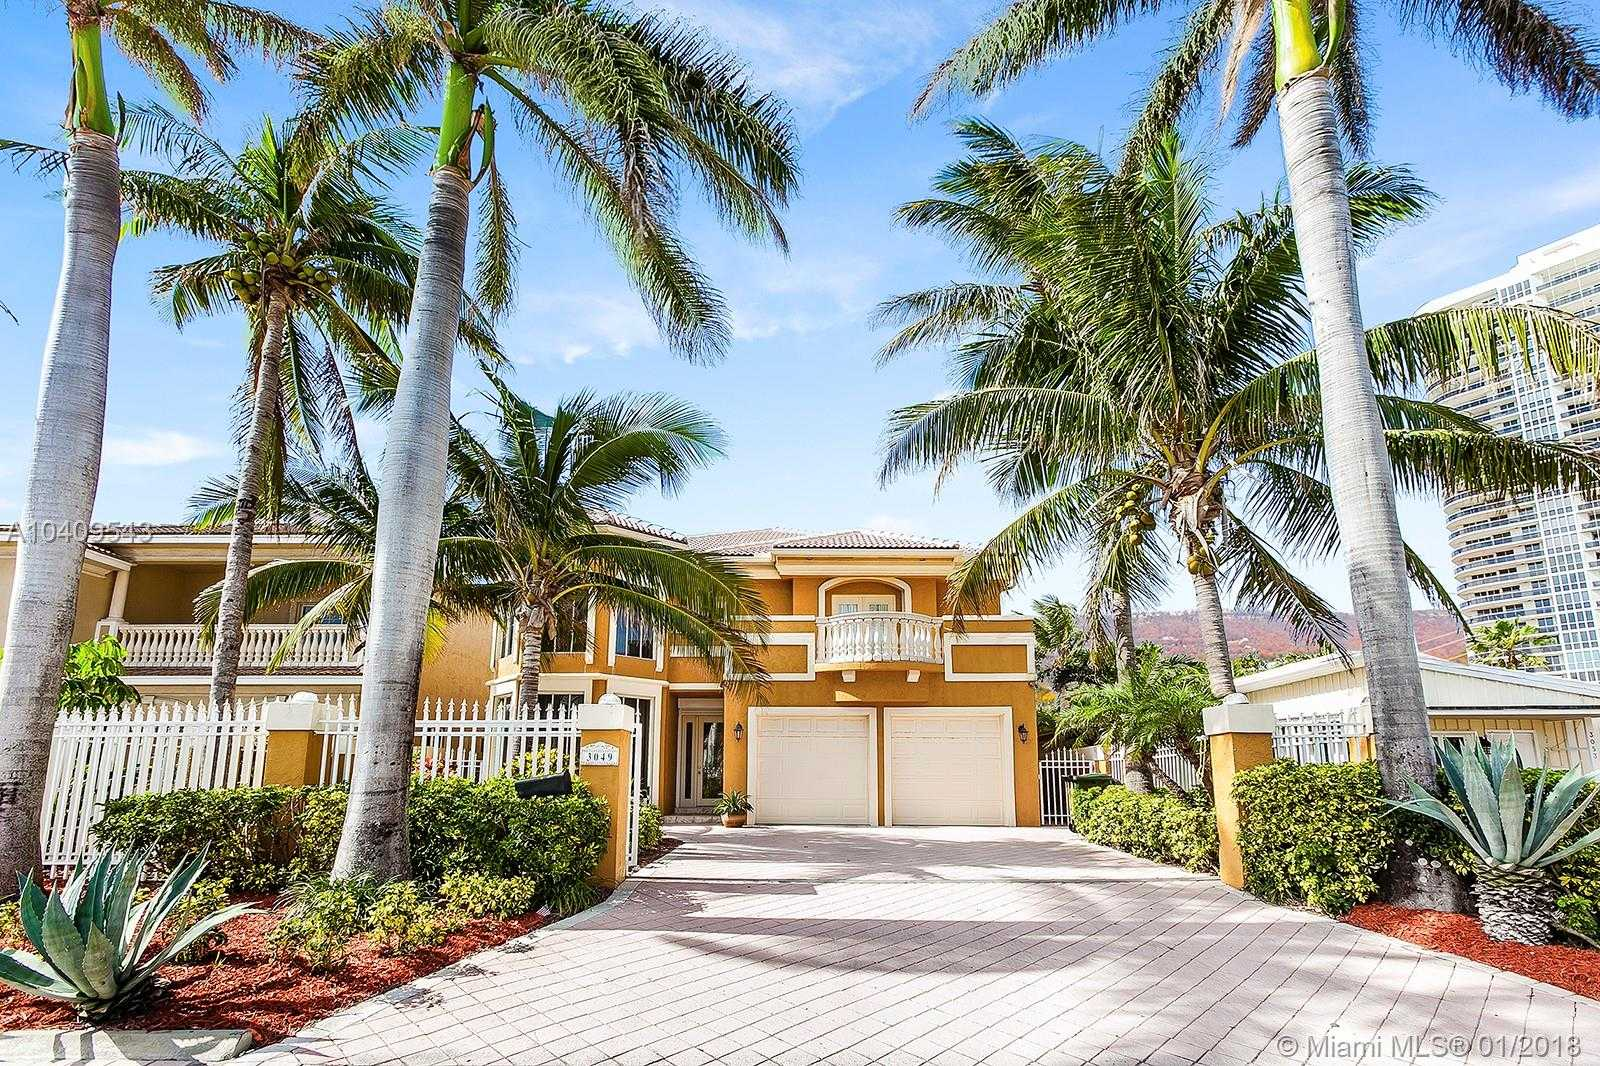 $2,350,000 - 4Br/5Ba -  for Sale in Lauderdale Beach, Fort Lauderdale